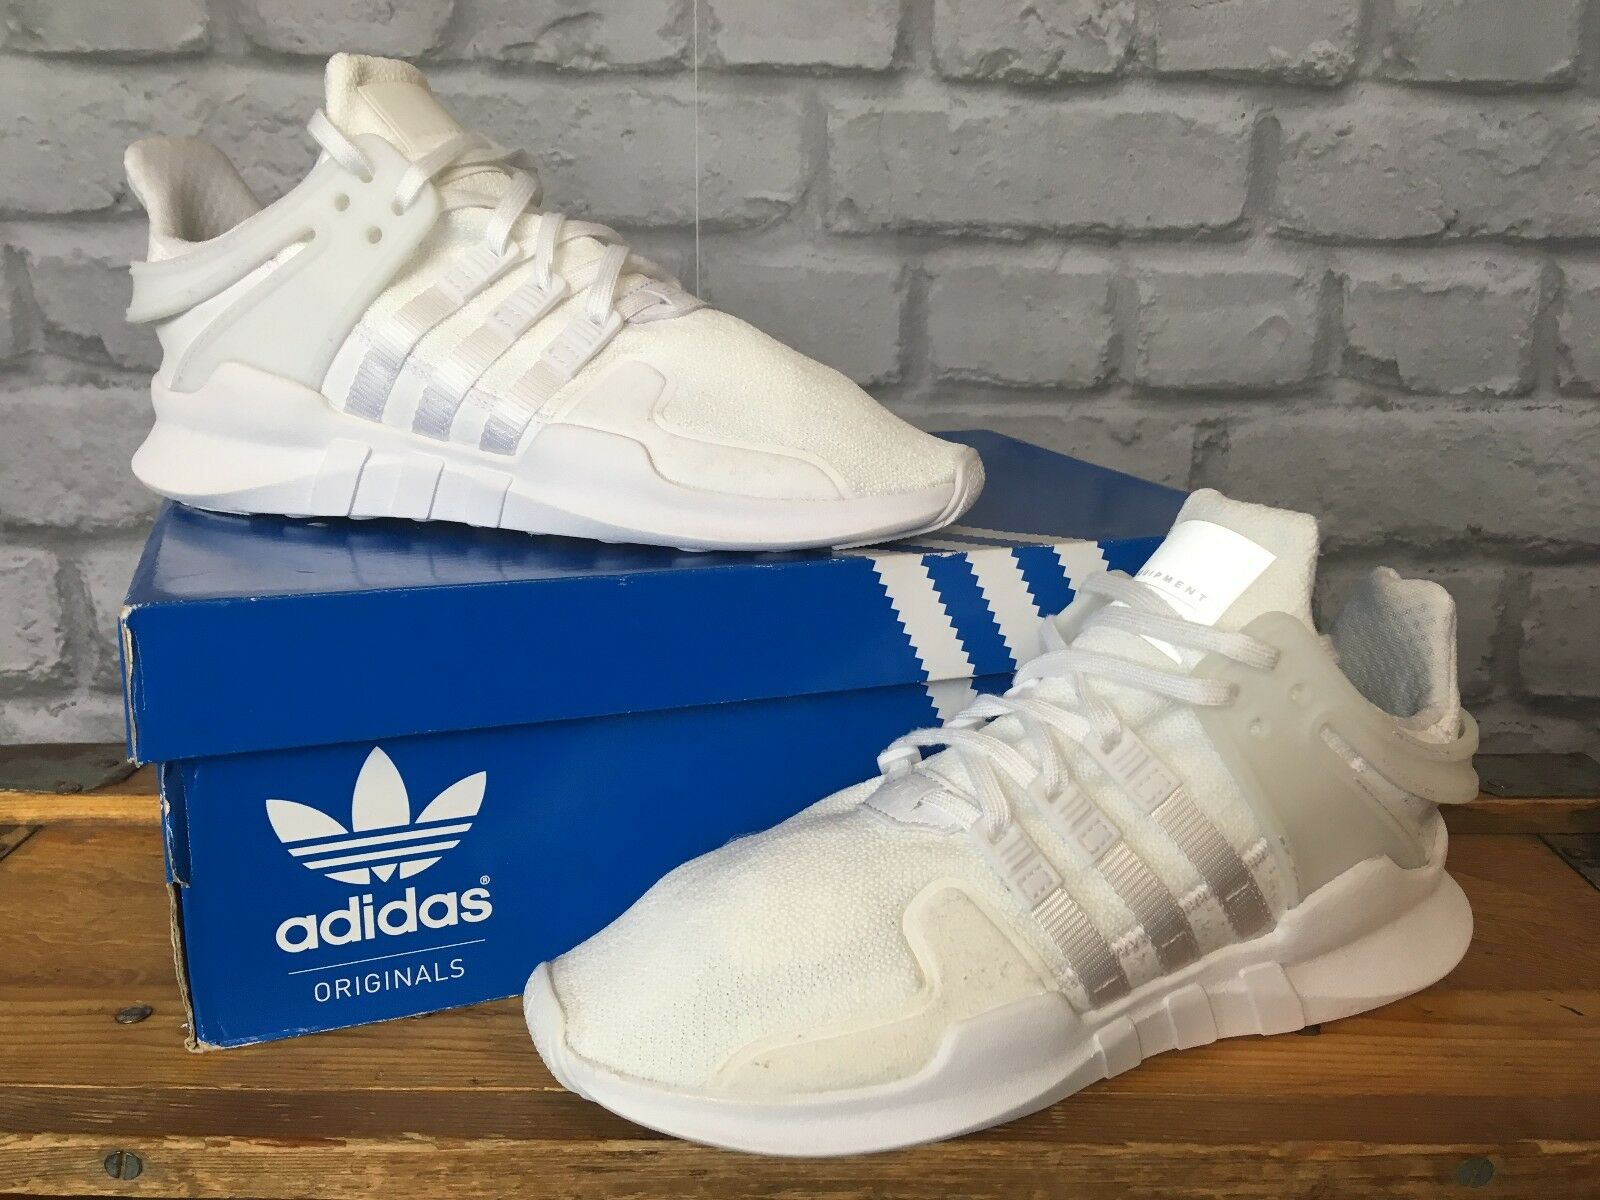 ADIDAS UK 5.5 EU 36 2/3 ORIGINALS EQT SUPPORT ADV TRAINERS CHILDRENS